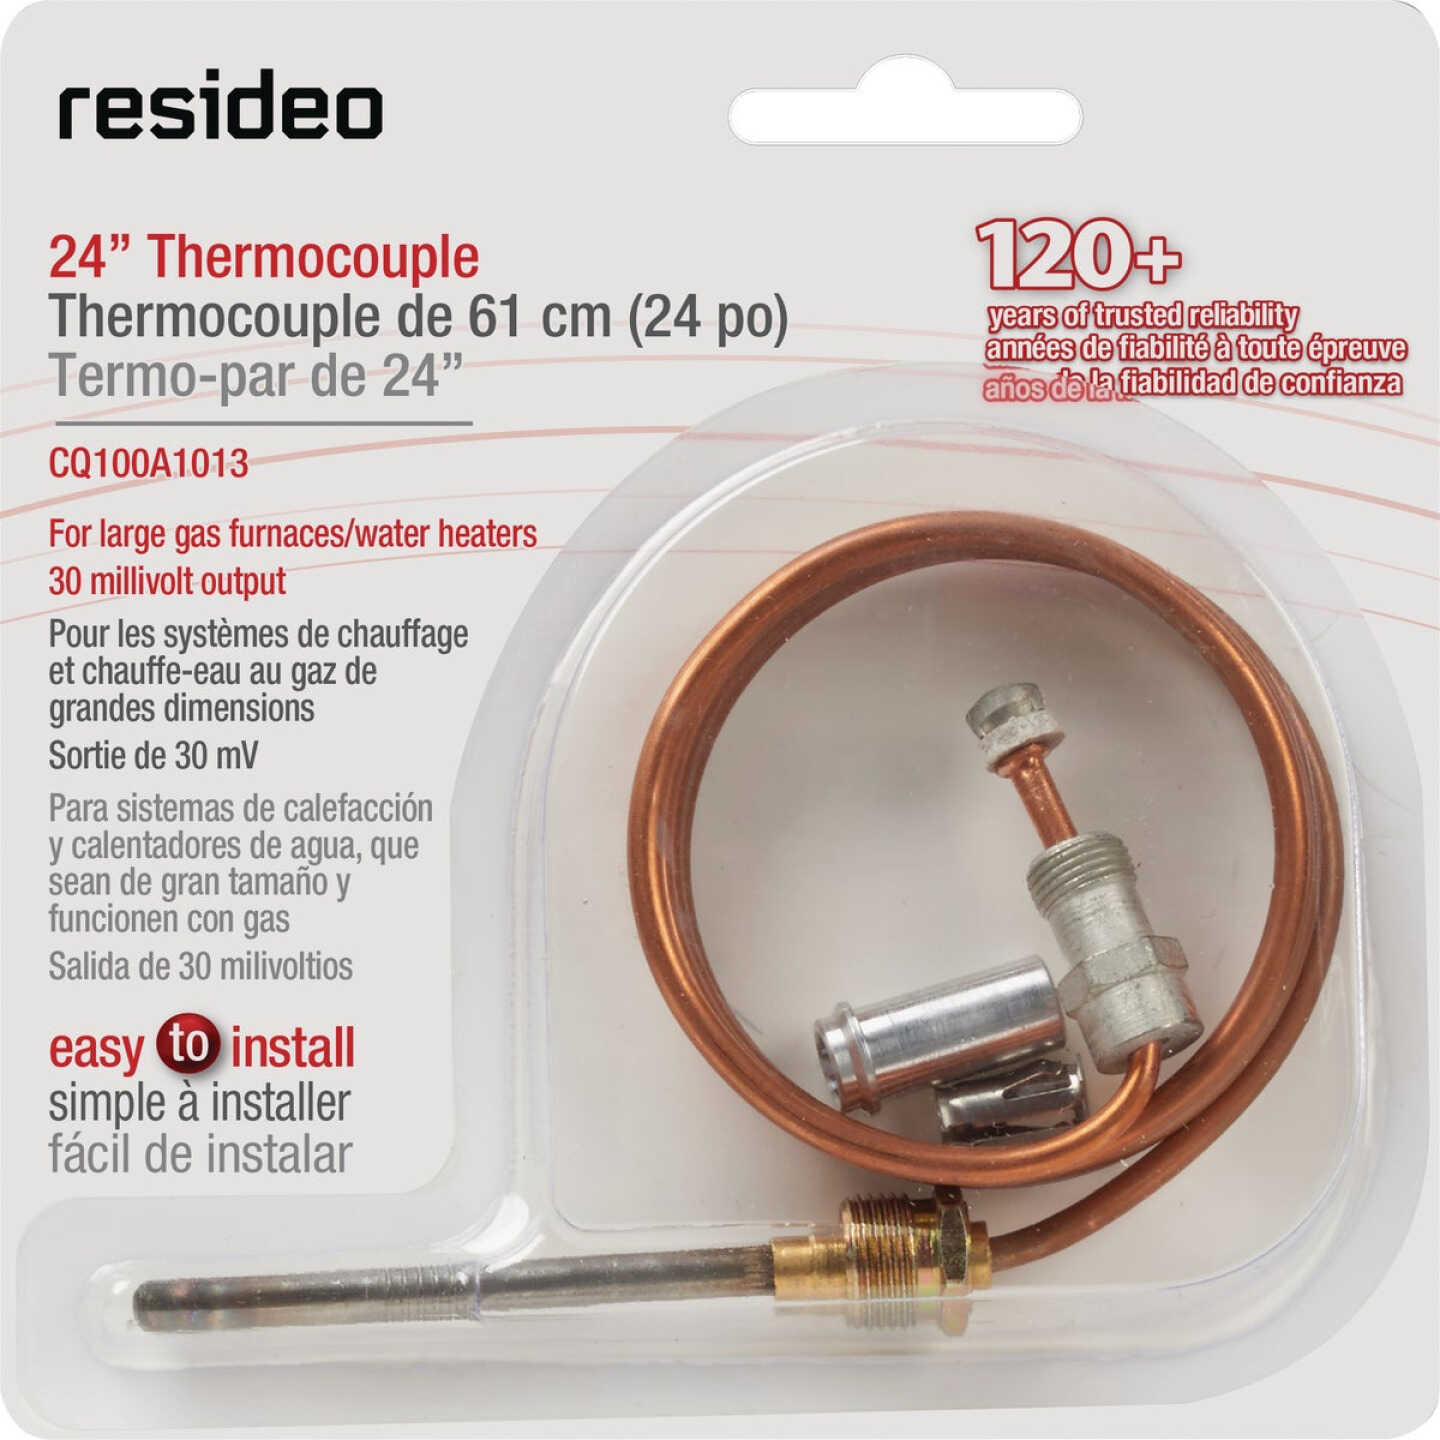 Resideo 24 In. 30mV Universal Thermocouple Image 1